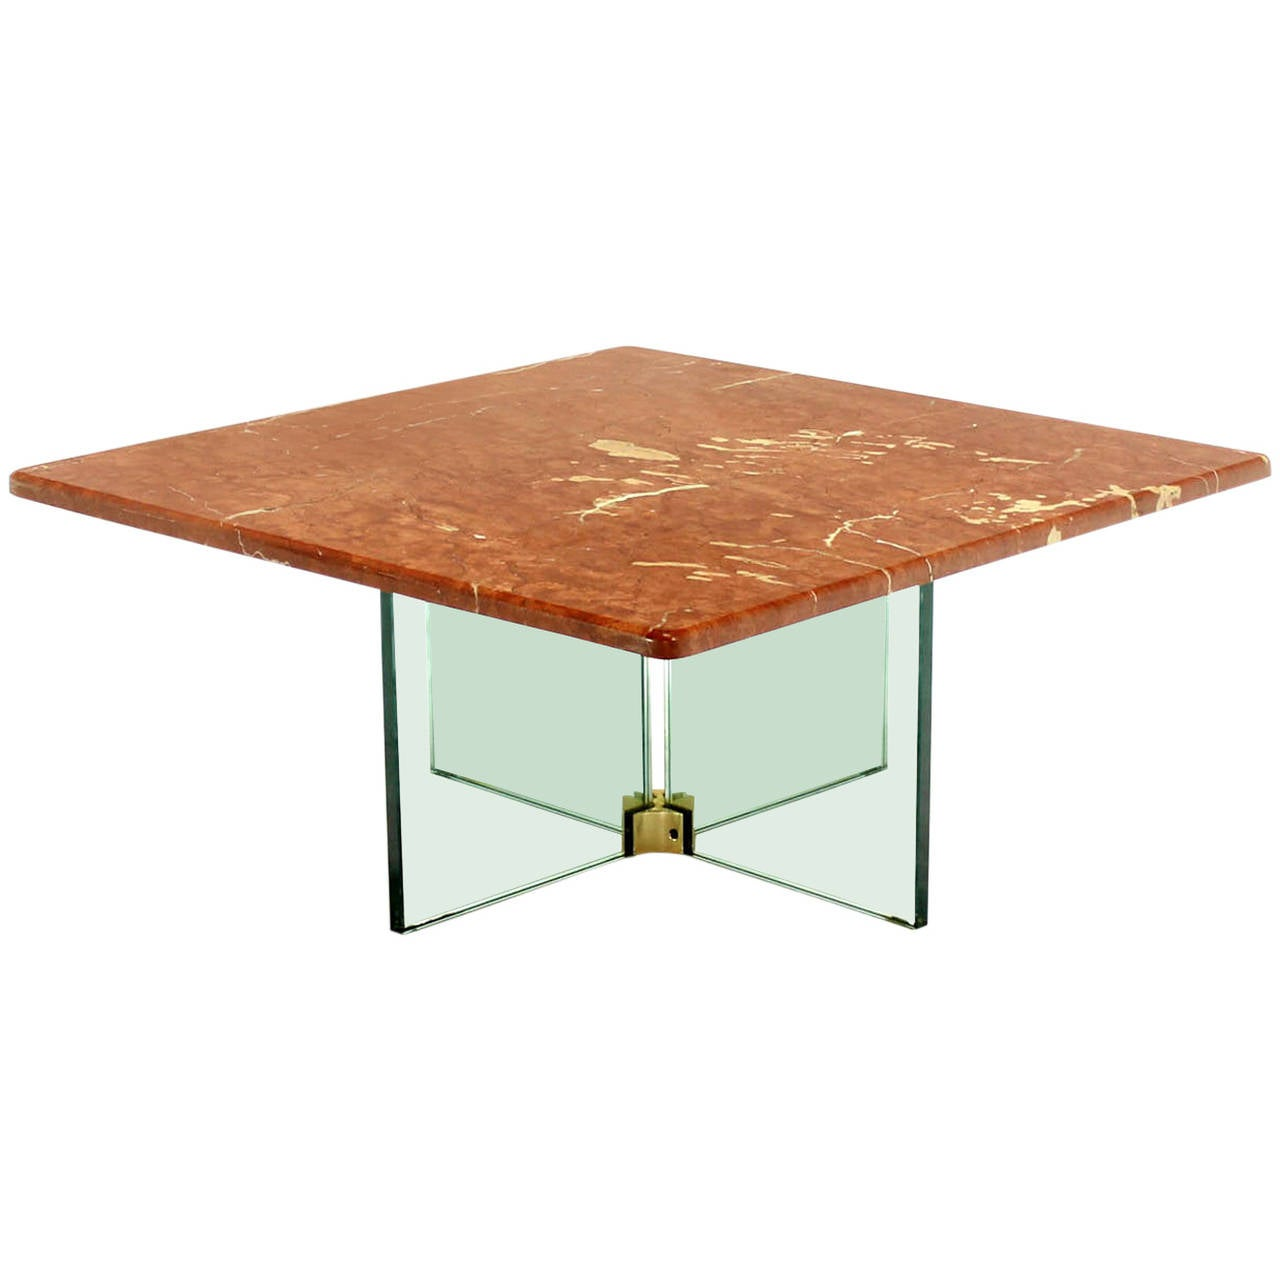 Glass x cross base coffee table w marble top for sale at 1stdibs Coffee tables with marble tops